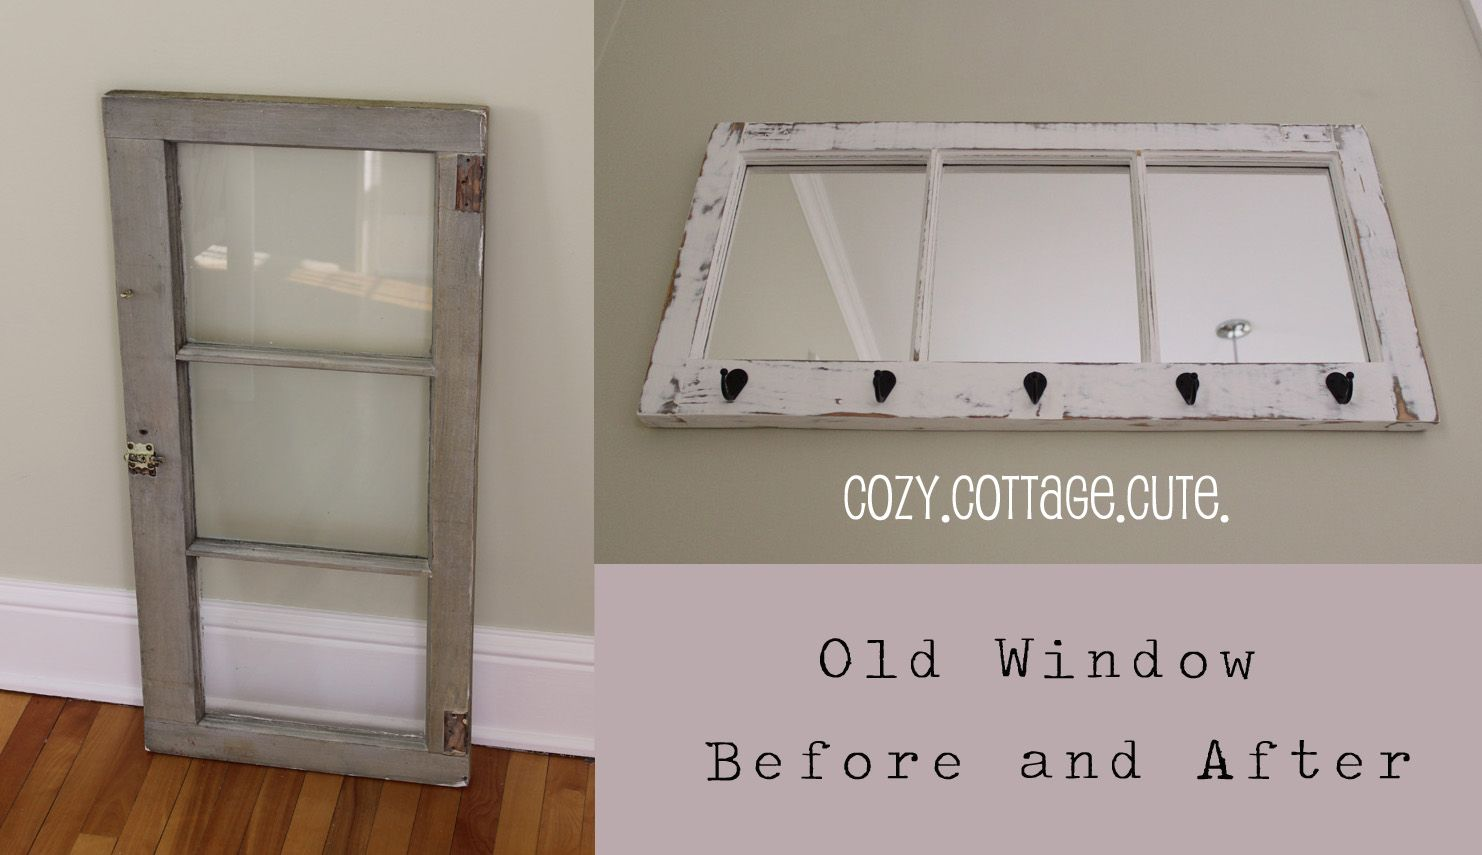 charming cabin coat rack. Before and After  An Old Window Turns Into mirror coat hanger 3